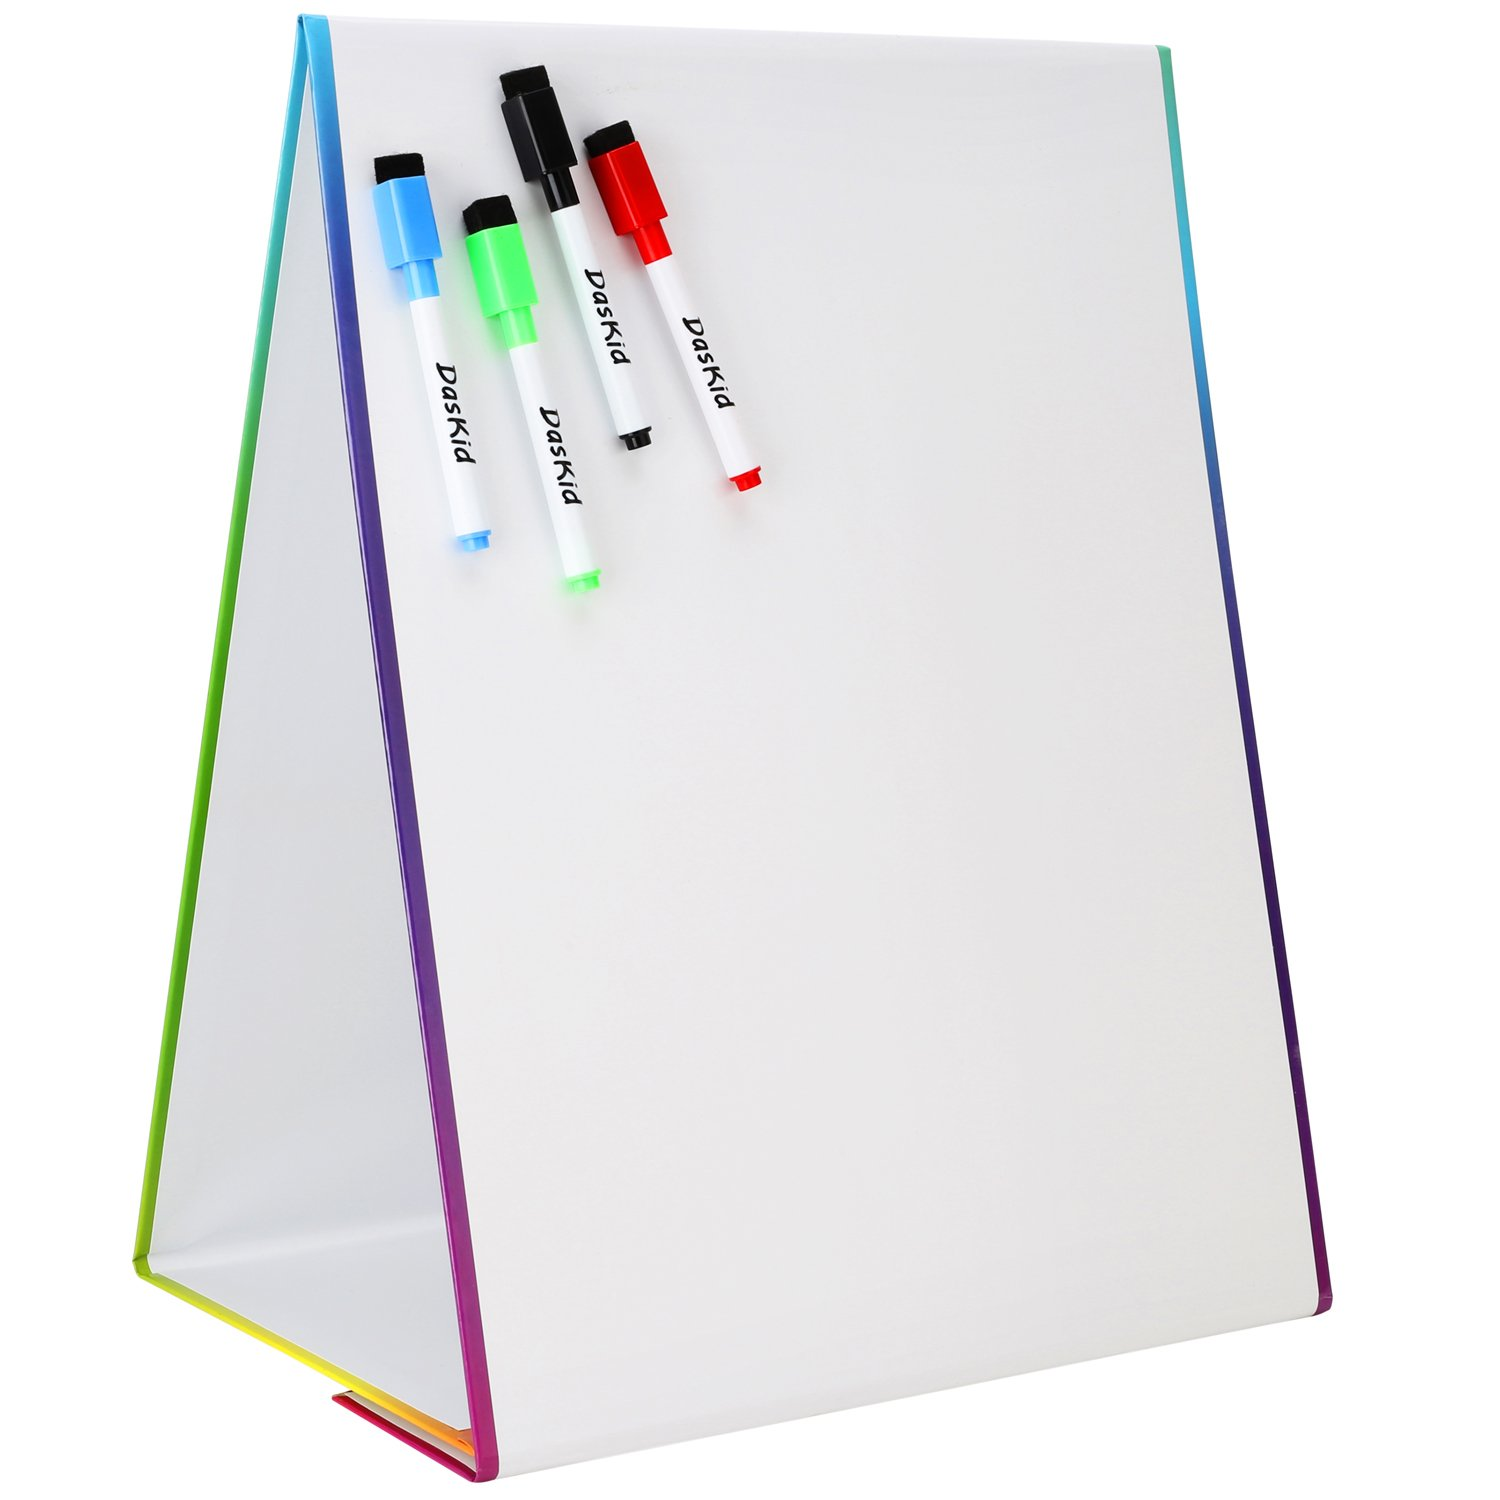 Tabletop Magnetic Easel & Whiteboard (2 Sides) Includes: 4 Dry Erase Markers. Drawing Art White Board Educational Kids Toy